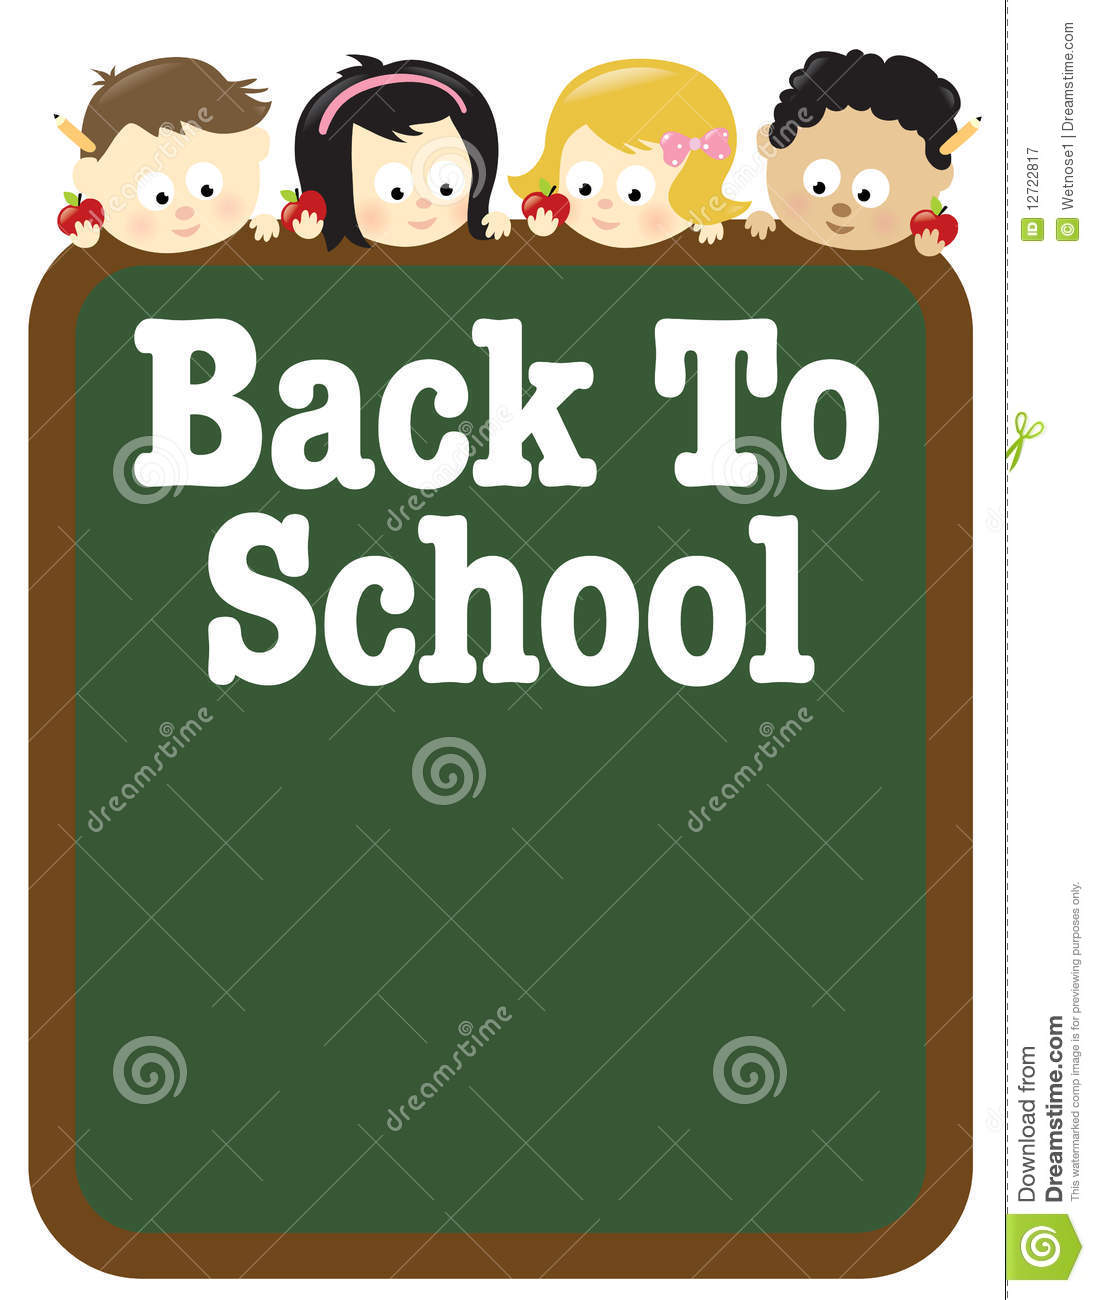 8 5x11 Back To School Flyer Template Stock Vector